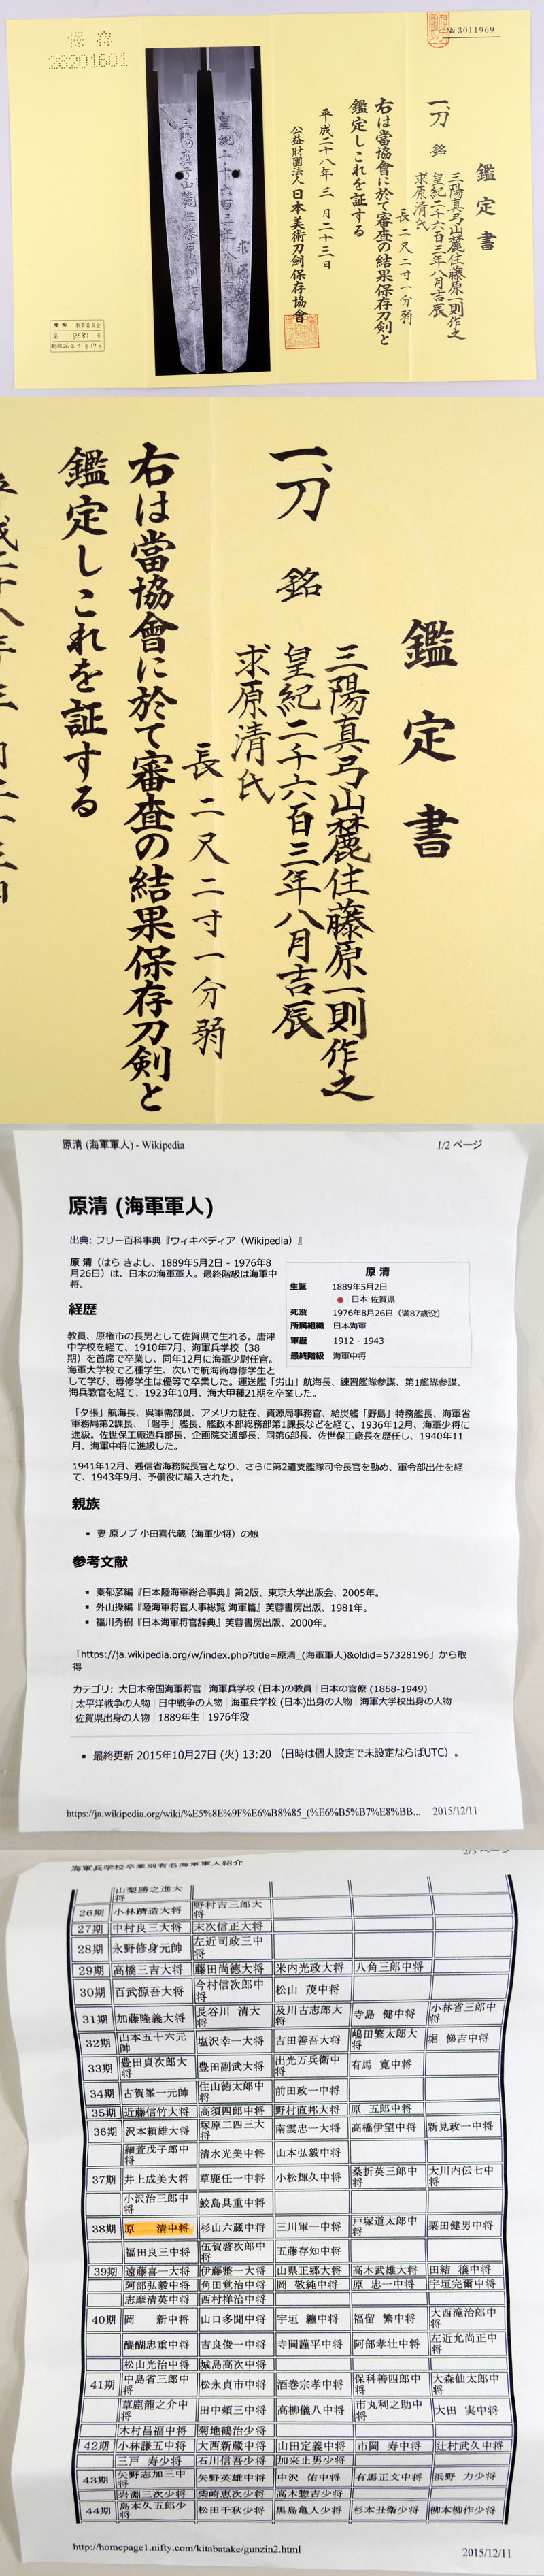 三陽真弓山麓住藤原一則作之 Picture of Certificate